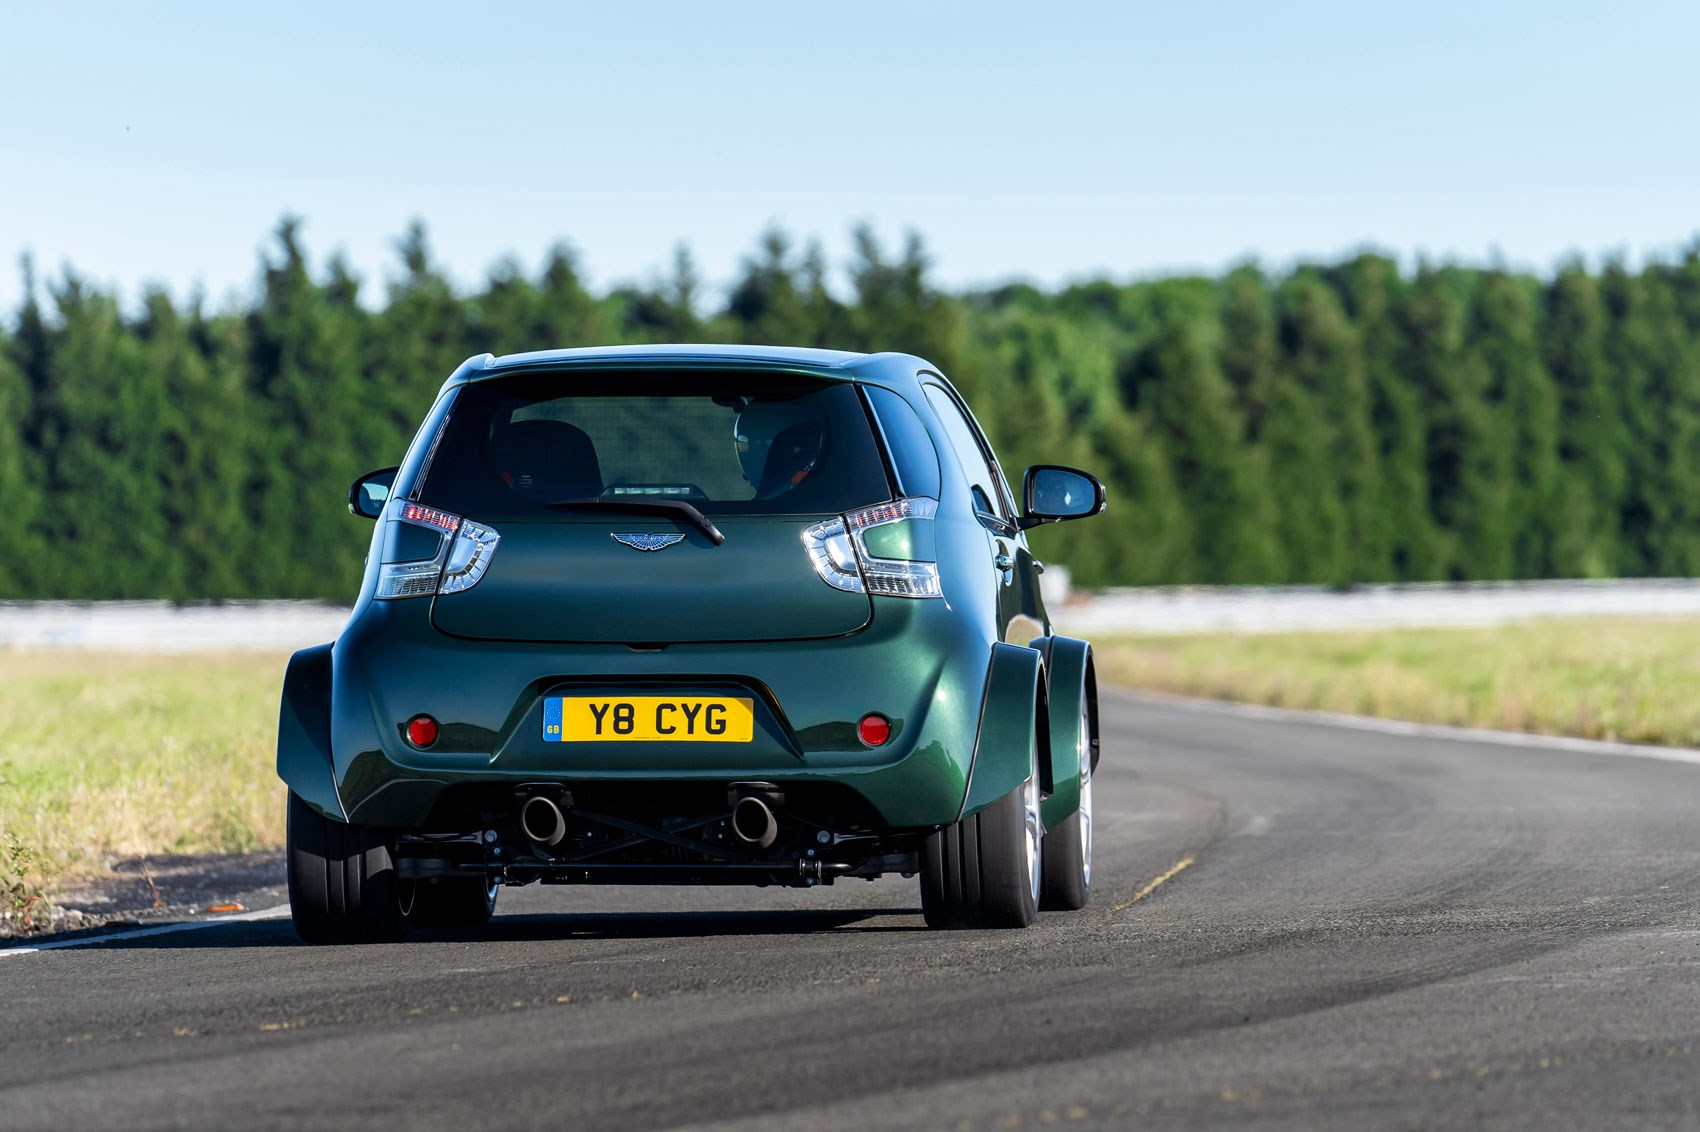 Big Things Small Packages Aston Martin Reveals V Cygnet CAR - Aston martin cygnet for sale